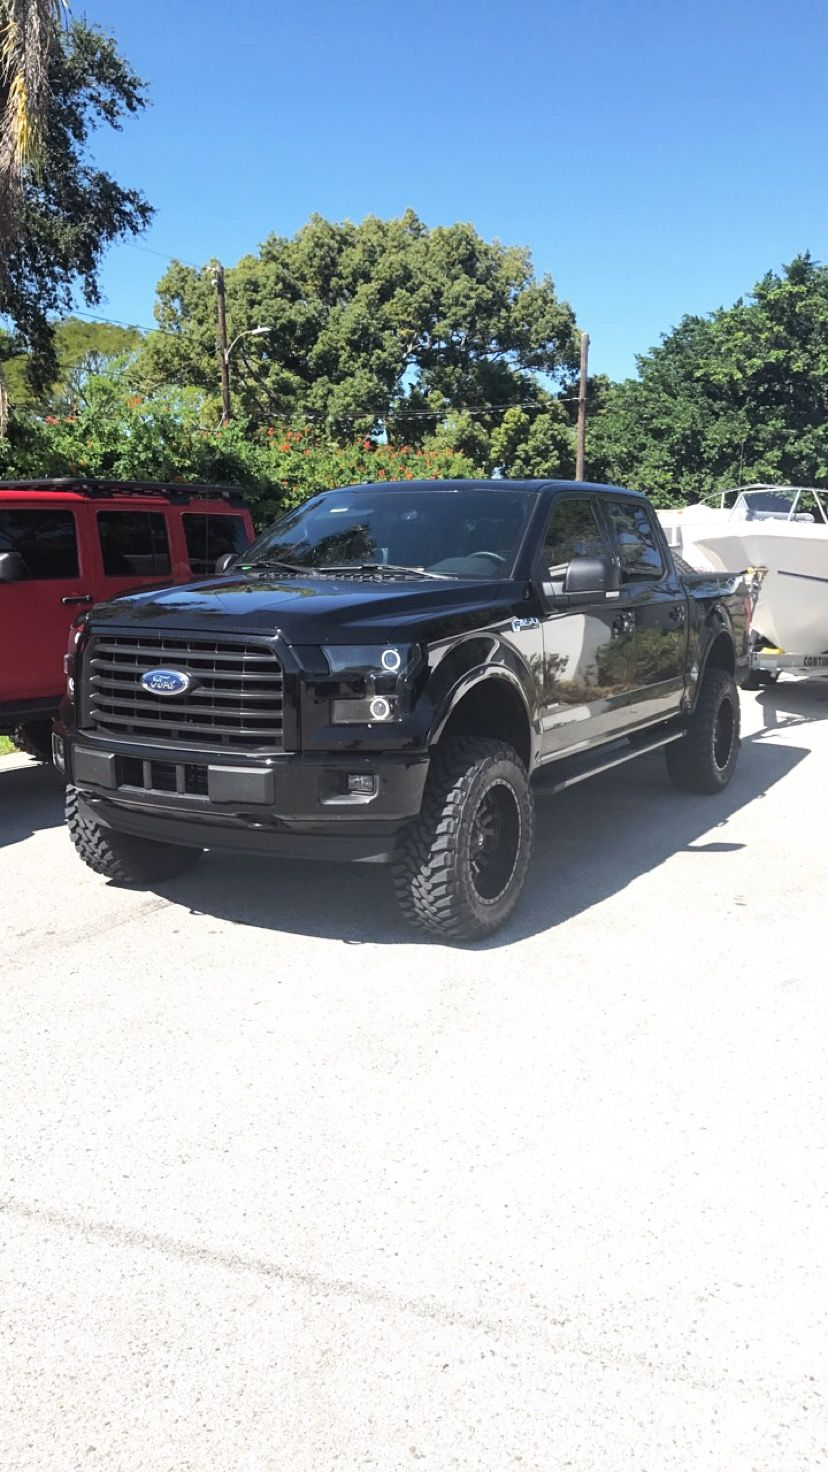 2017 Ford F 150 Xlt Sport 4x4 6 Lift On 35 Toyo Tires And 20x10